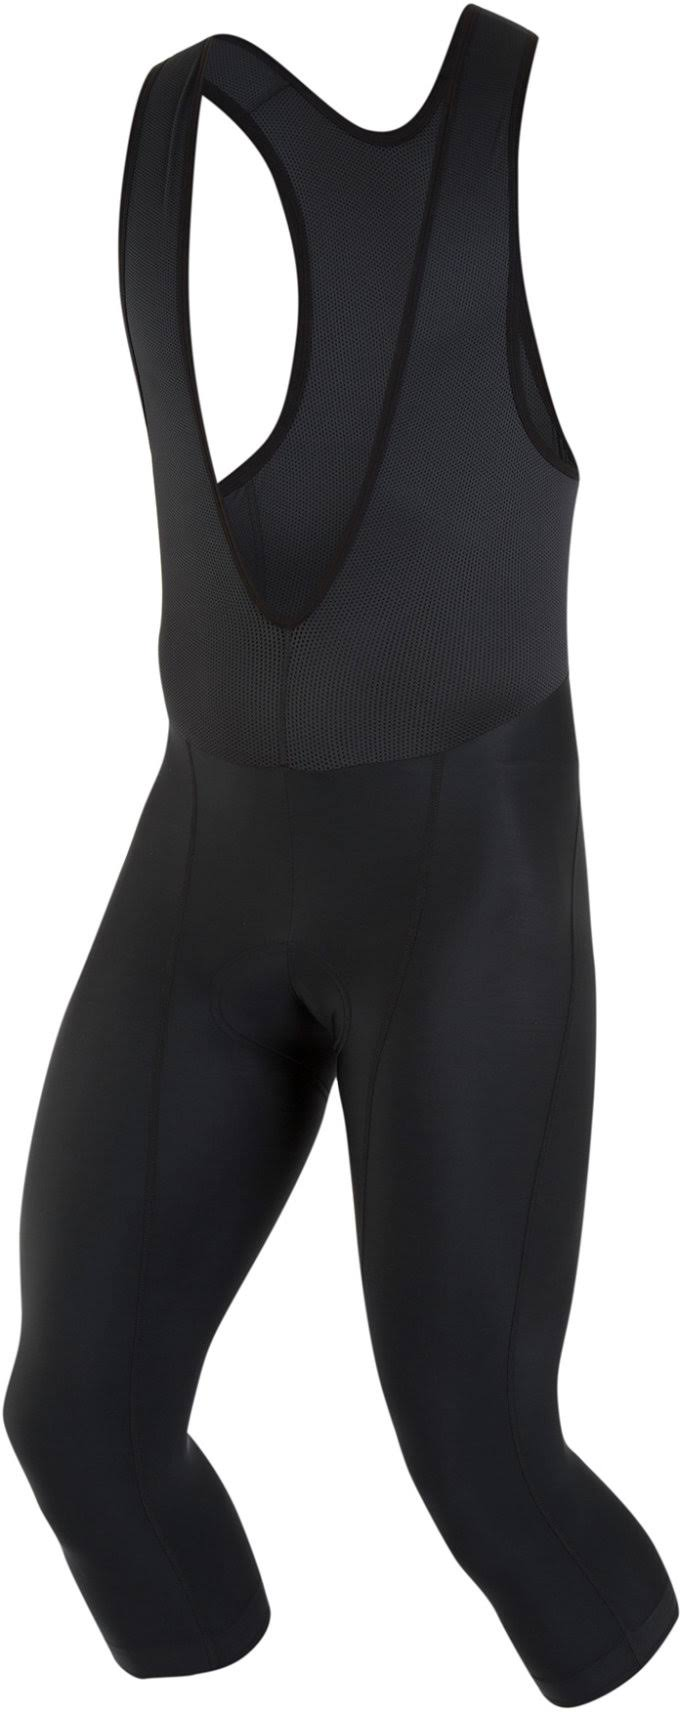 Pearl Izumi Men's Pursuit Attack 3/4 Bib Tight - Large - Black